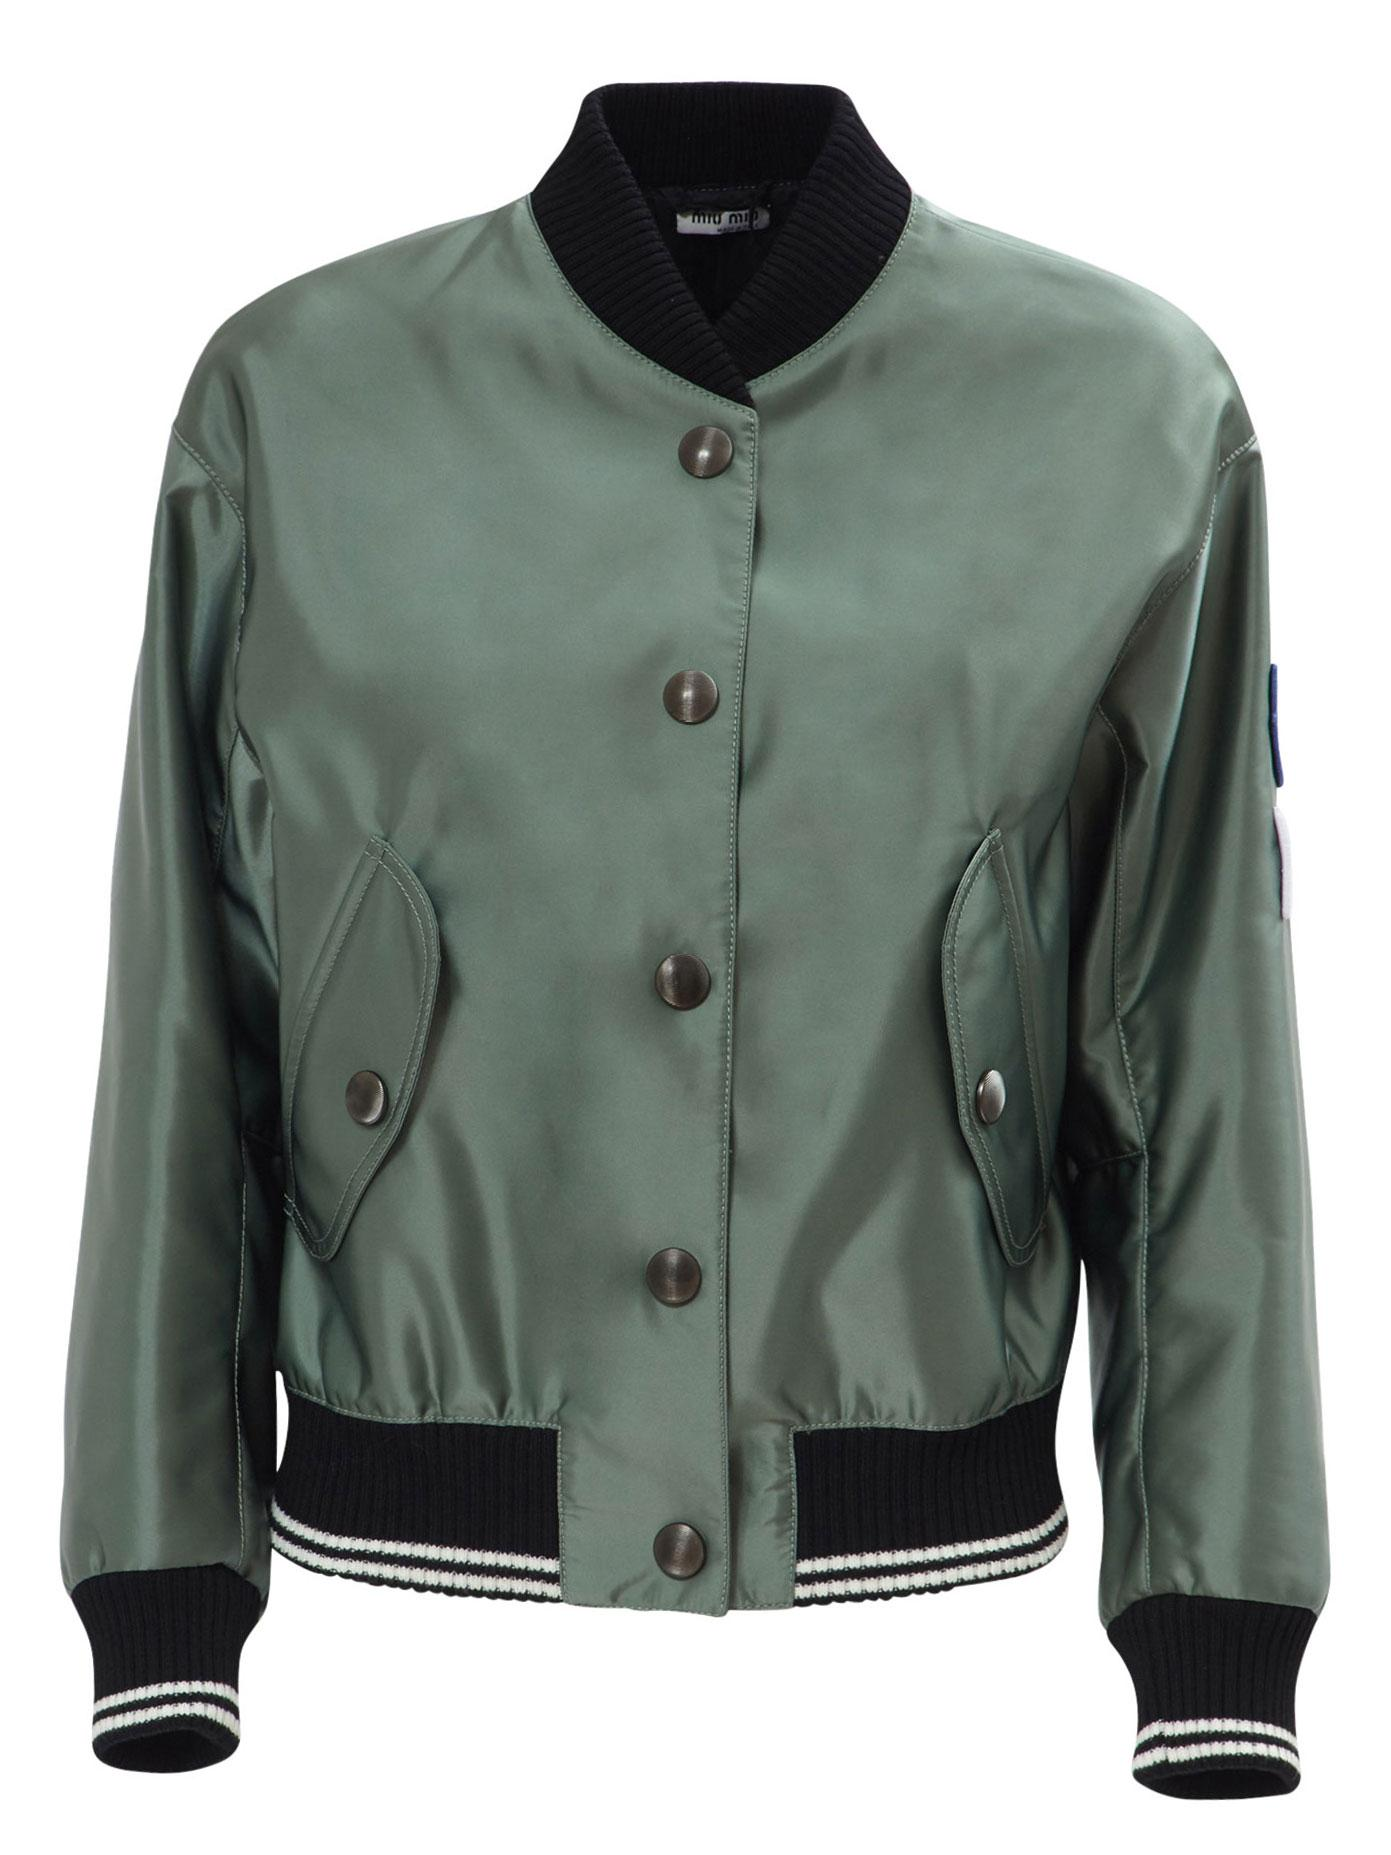 Lyst Miu Miu Shiny Bomber Jacket With Cat Patch In Green